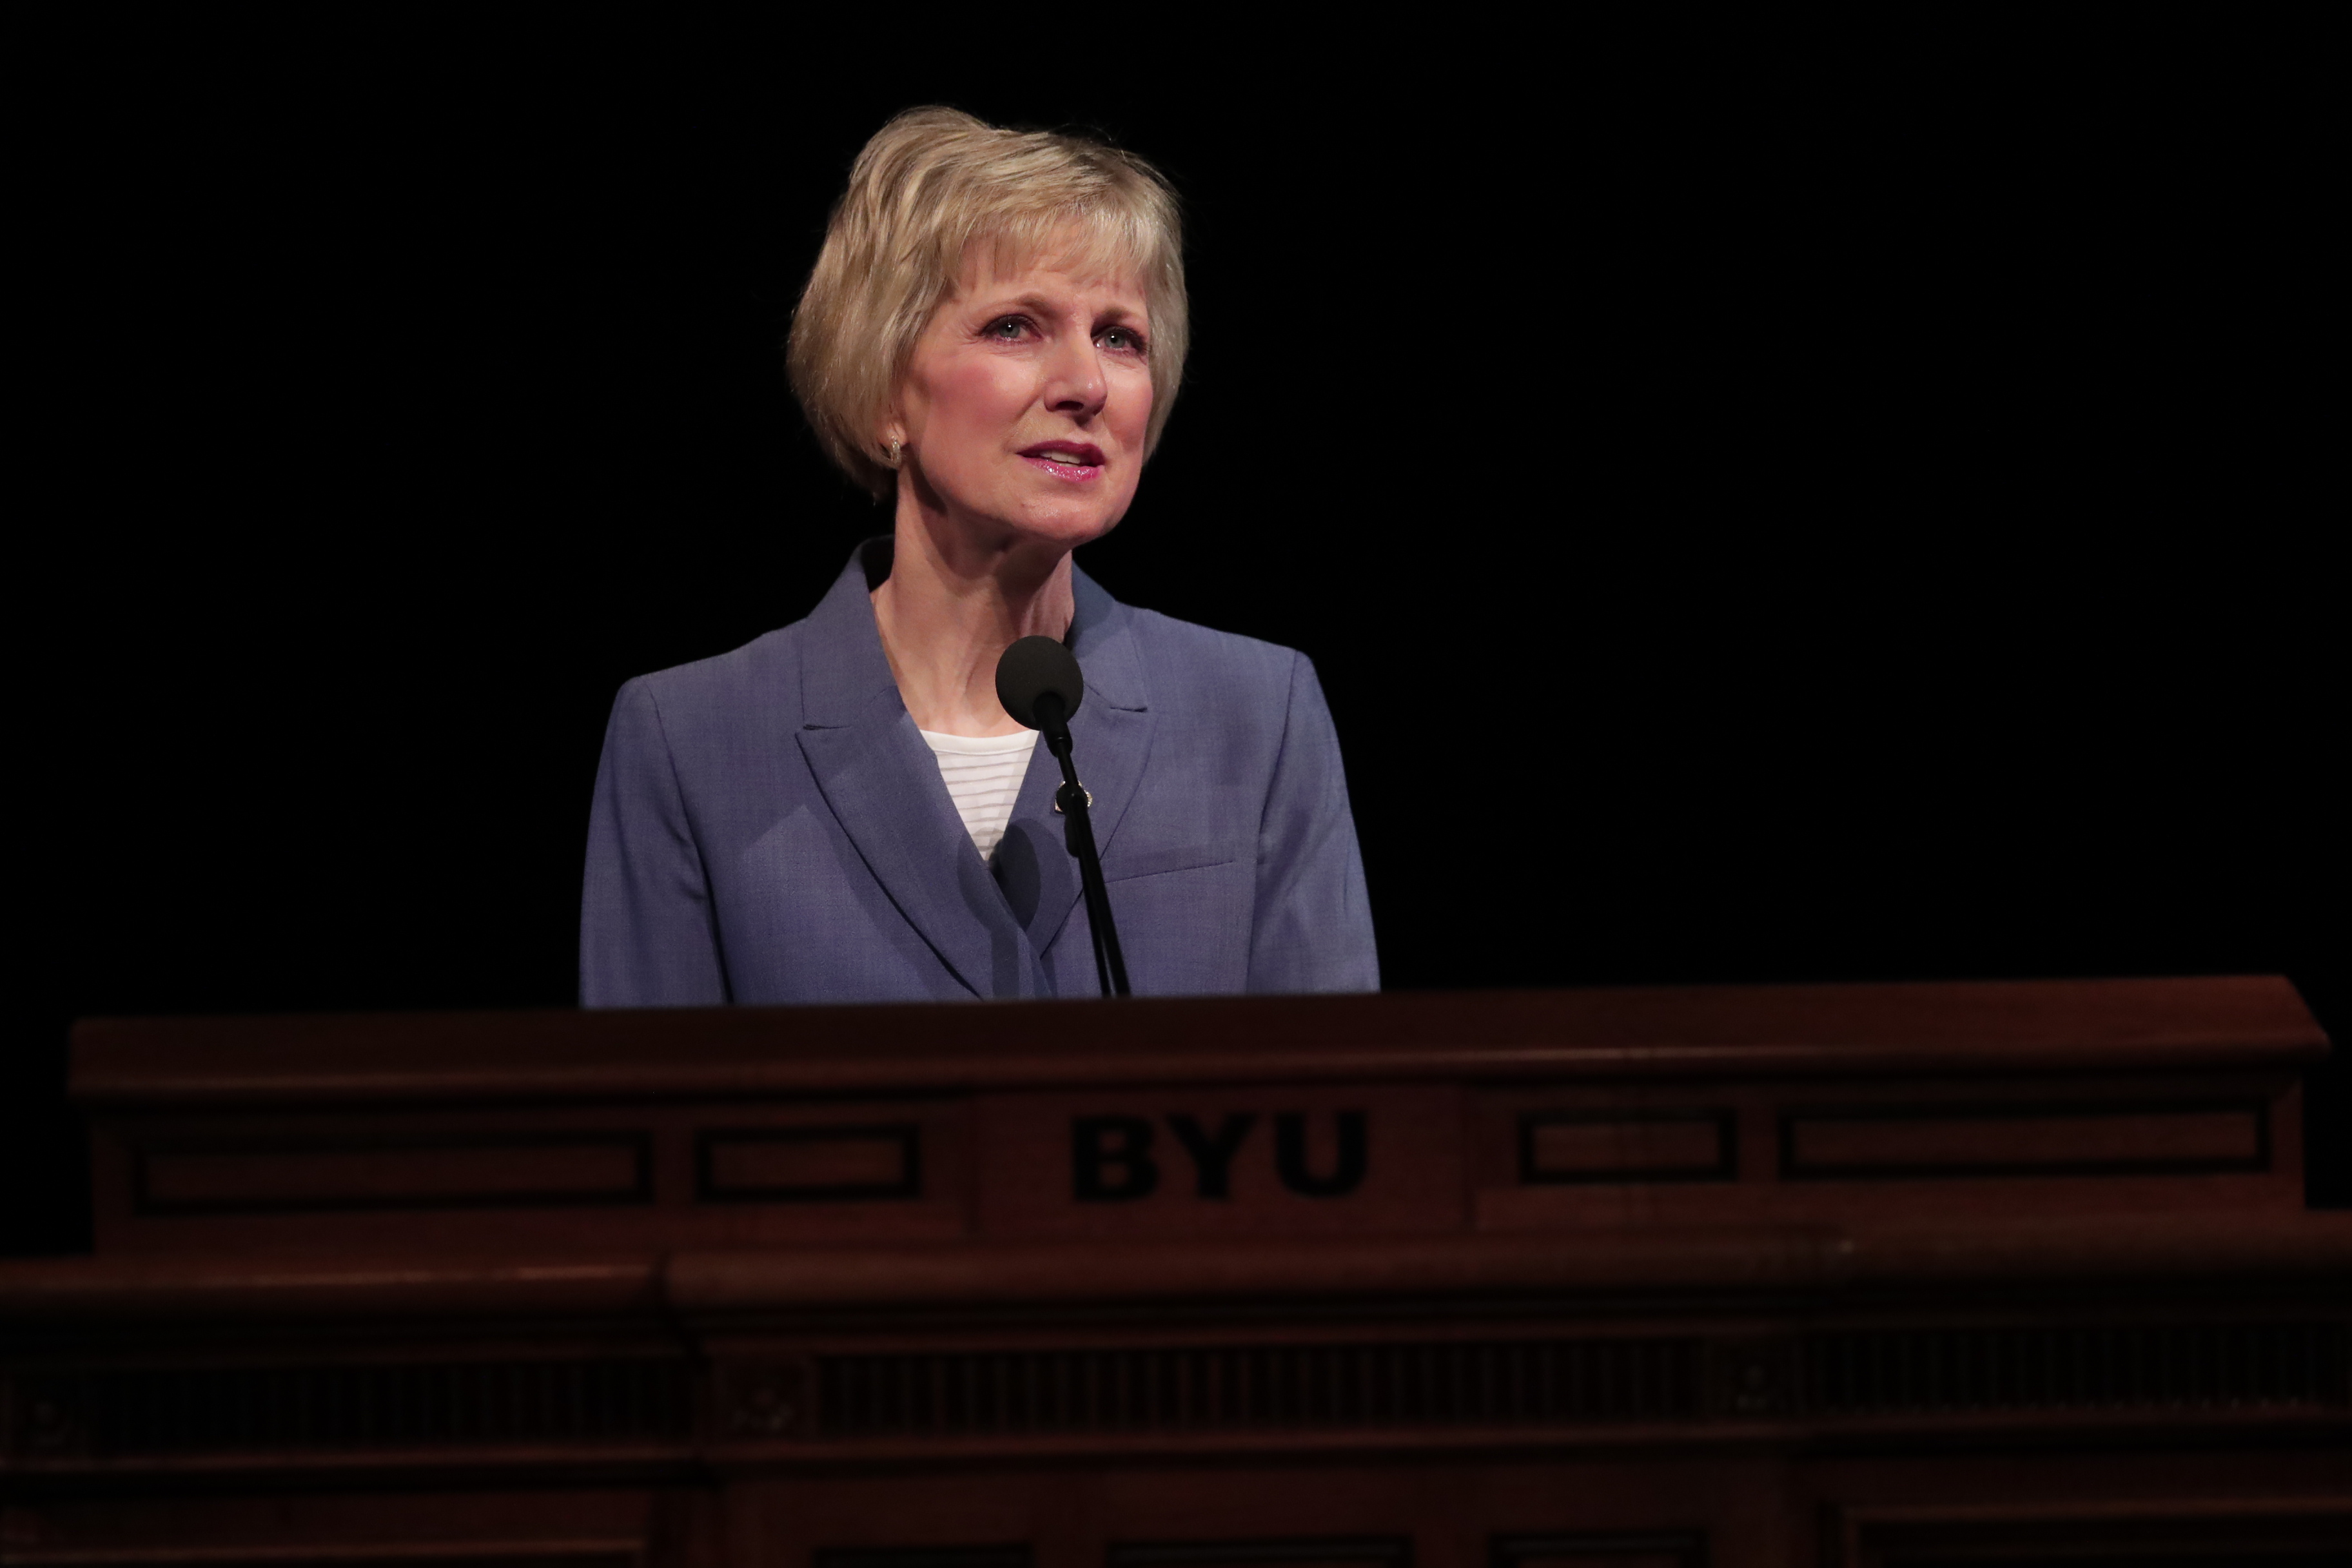 Sister Jean B. Bingham, Relief Society general president, speaks during a session of the BYU Women's Conference at the Marriott Center on May 2, 2019.